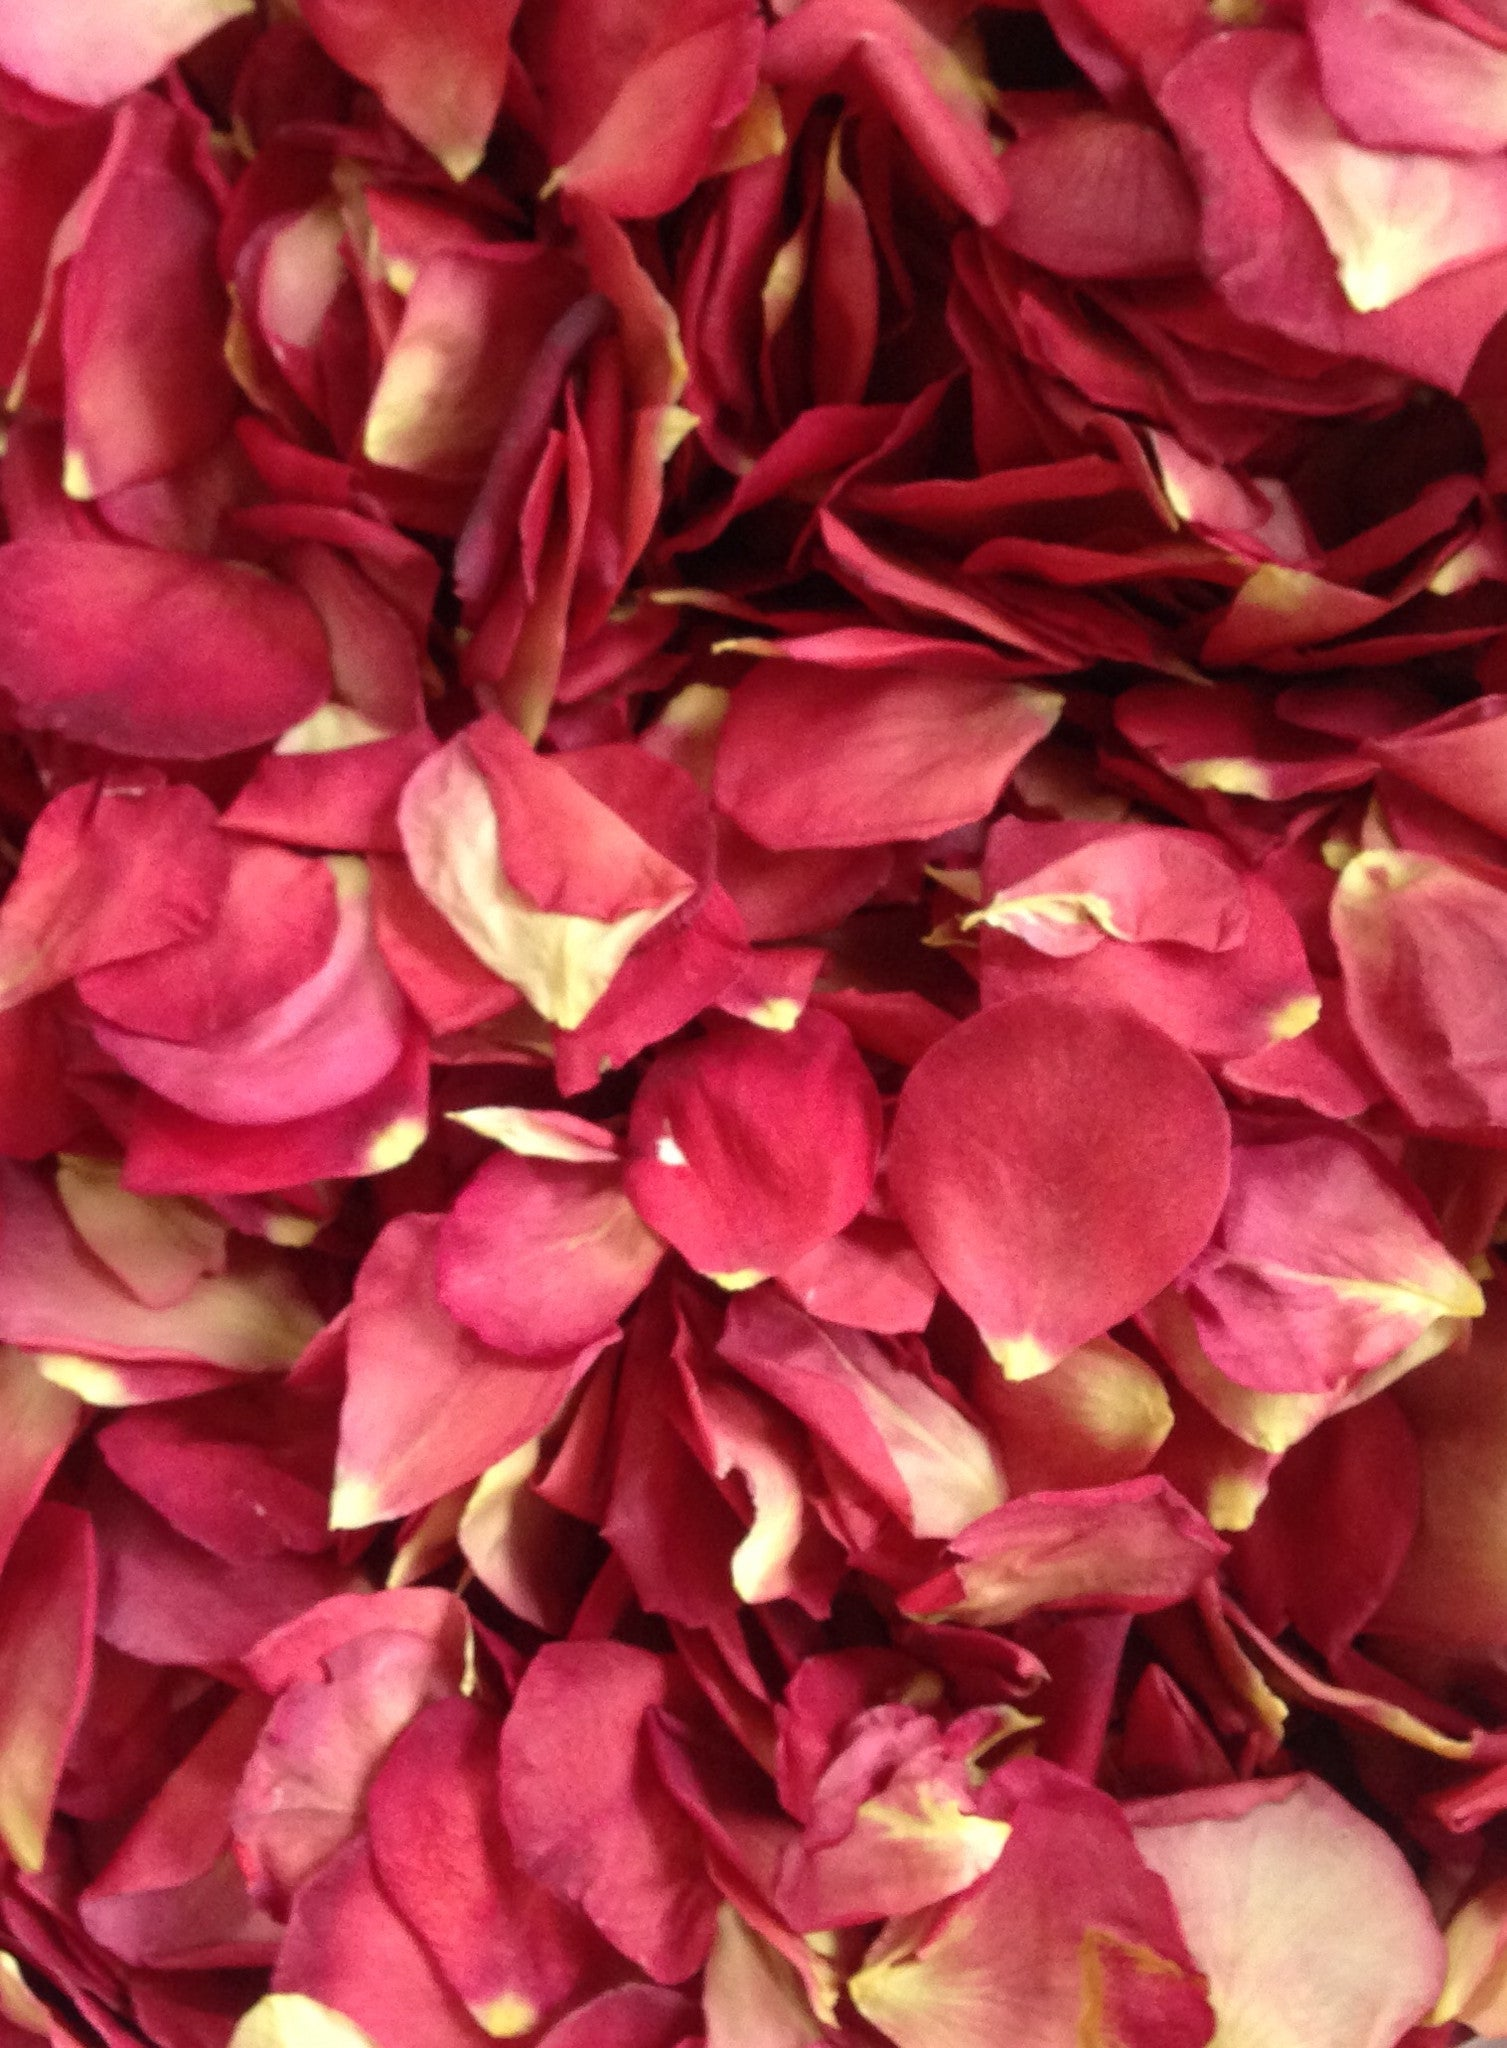 Check out our new Vintage Red Rose Petals, just in time for Valentine's Day